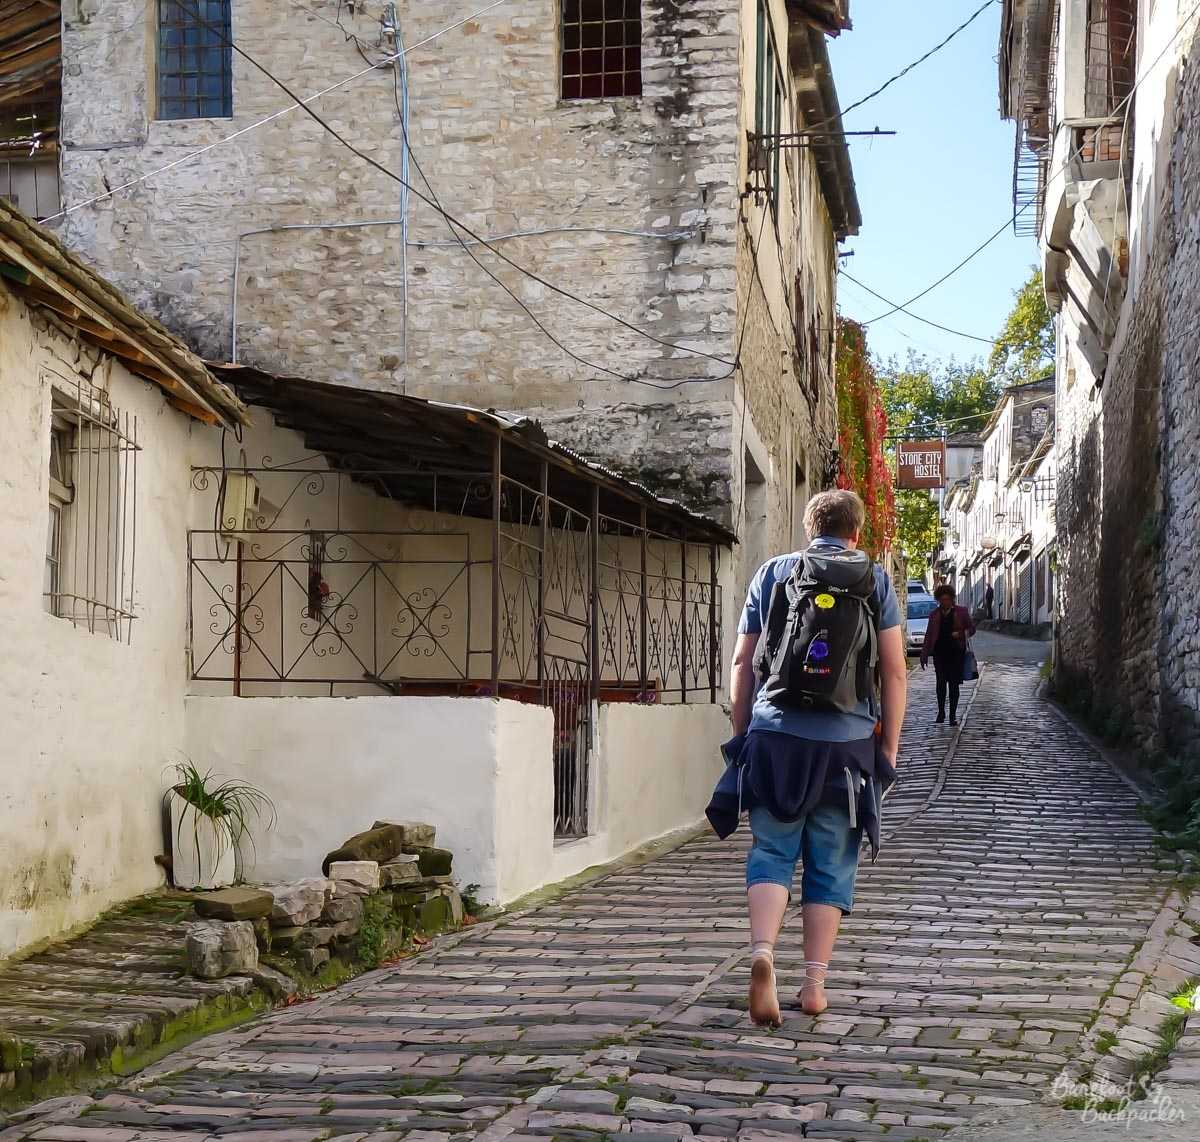 Walking barefoot with a backpack through the cobbled streets of Gjirokaster, in Albania